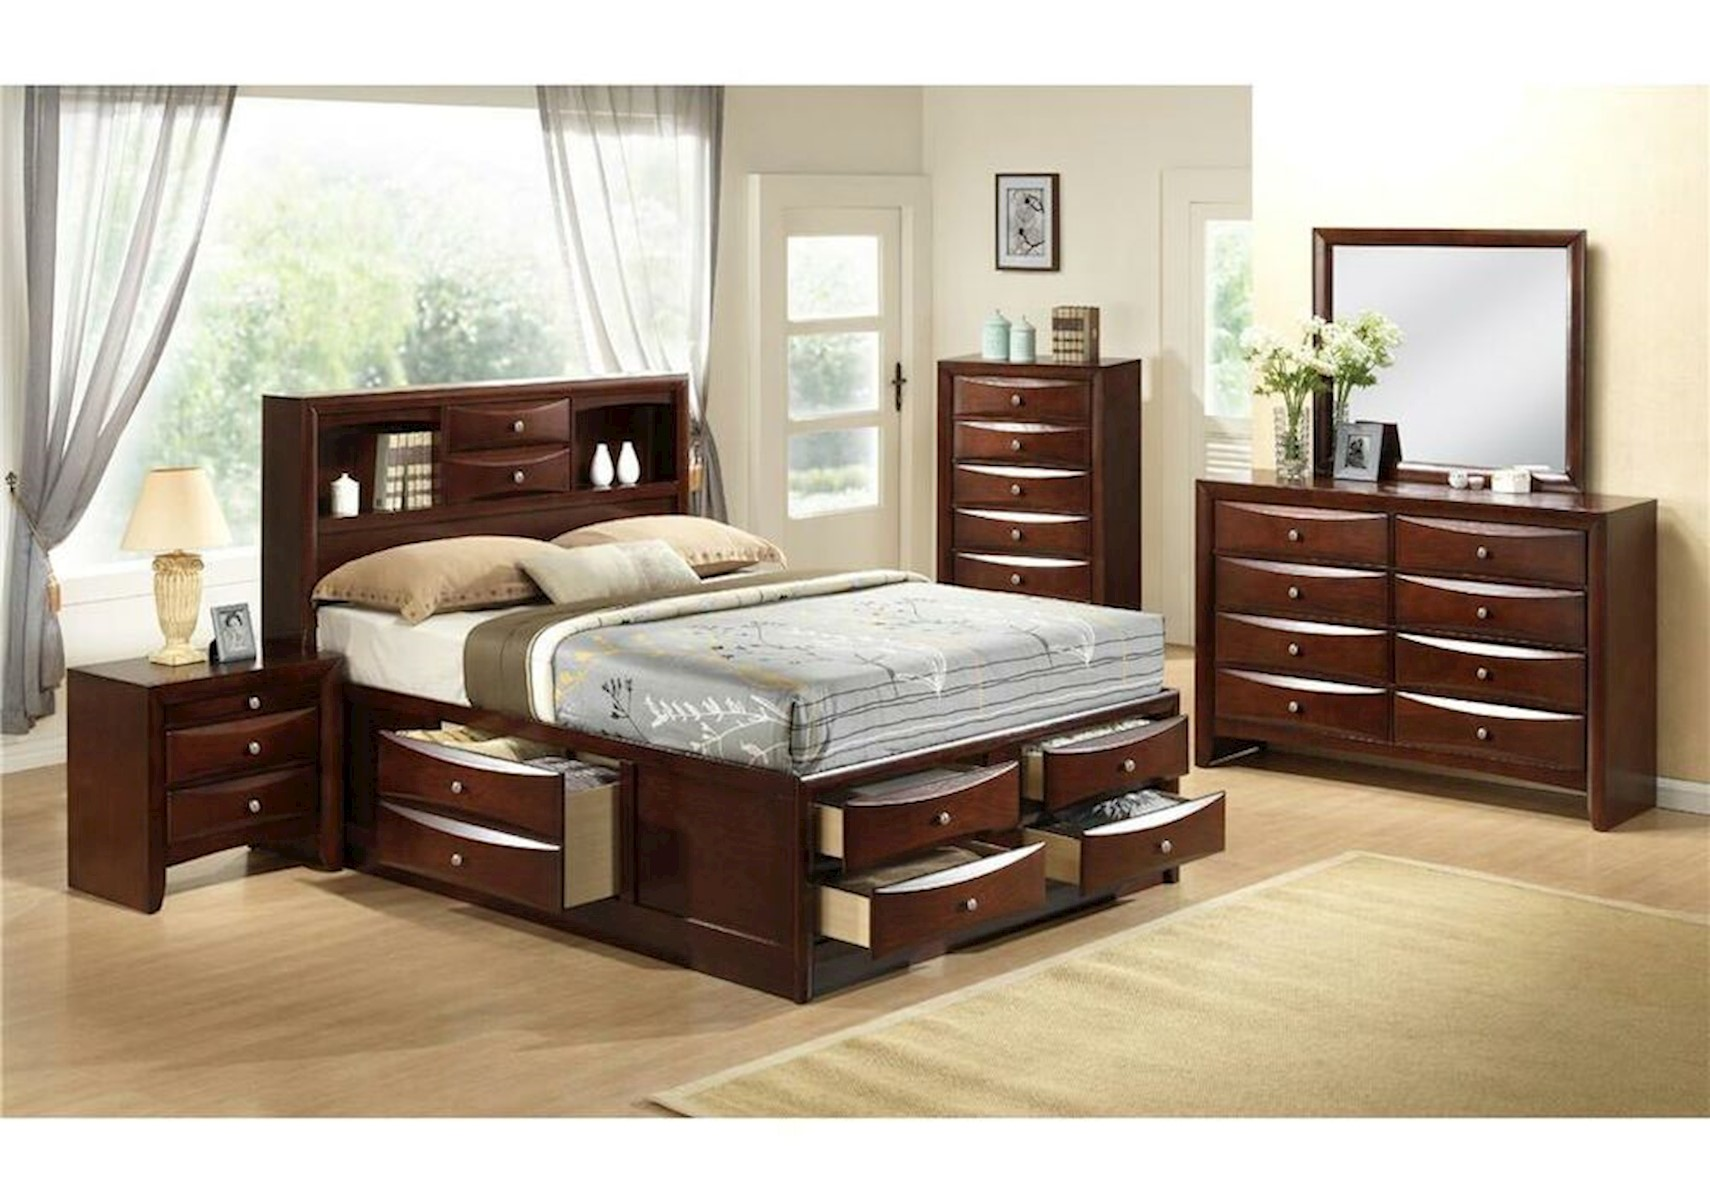 emily bedroom set. X Lacks  Emily 4 Pc Queen Bedroom Set